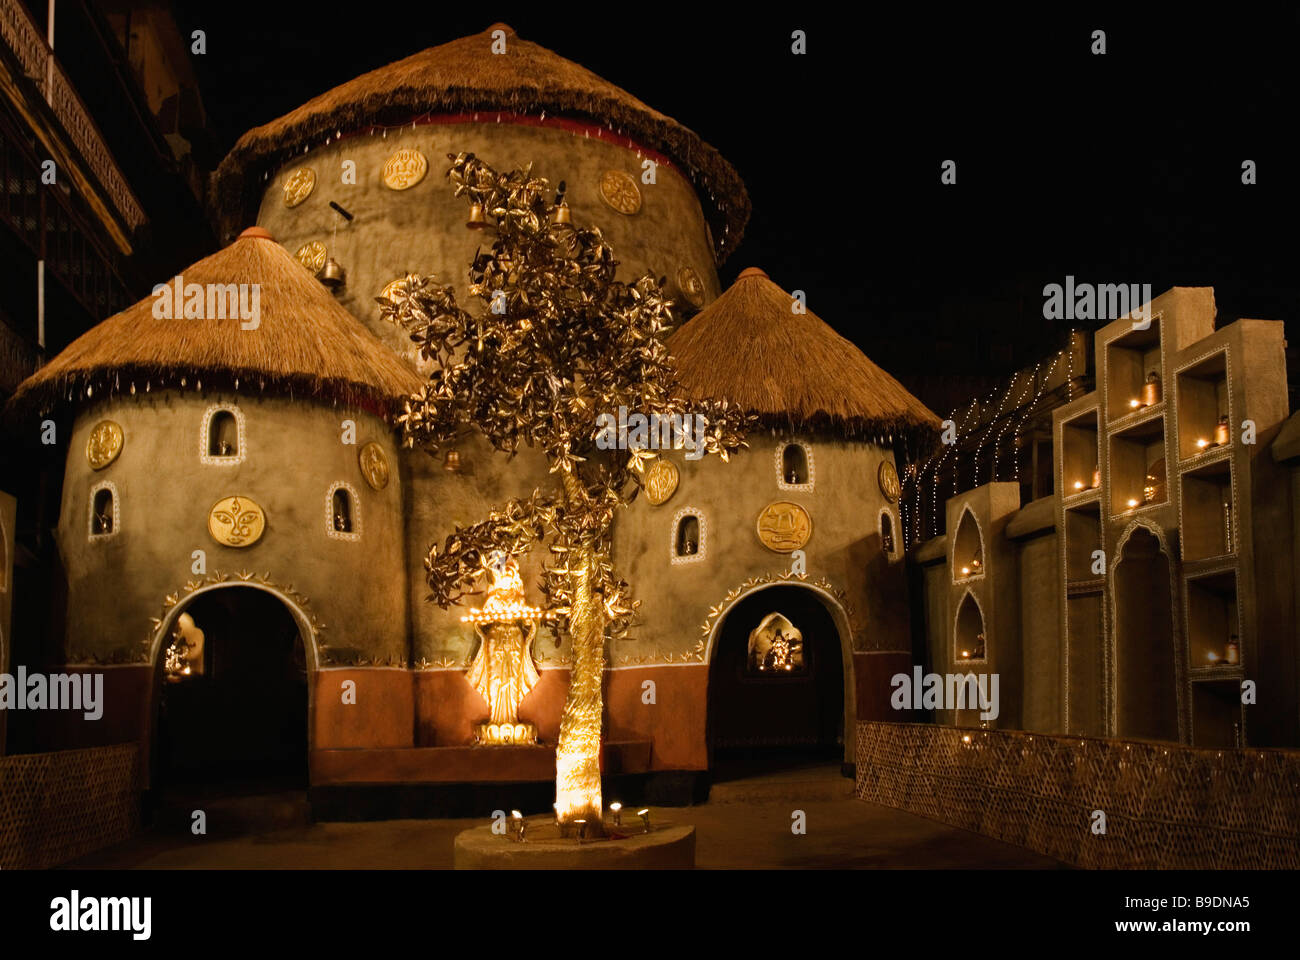 Puja pandal stock photos puja pandal stock images alamy durga puja pandal at night kolkata west bengal india stock image altavistaventures Choice Image